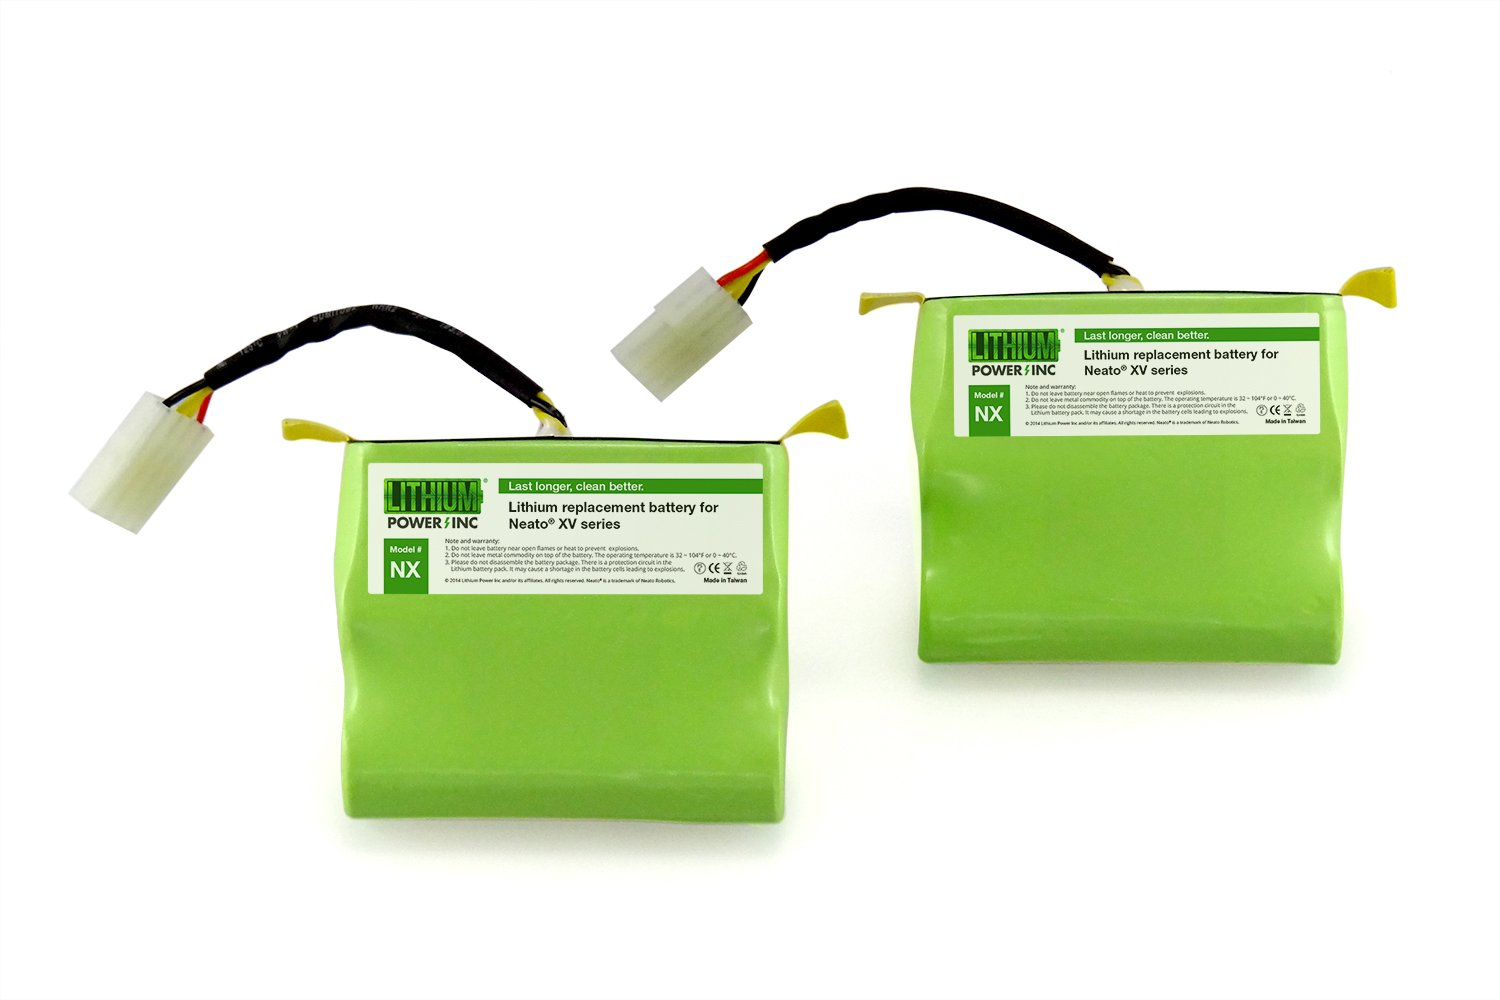 Lithium Neato XV Series Replacement Battery for Neato XV-11, XV-12, XV-14, XV-15, XV-21, XV-25, XV Essential, XV Signature and XV Signature Pro, 4400mAH (Set of 2) - UL&CE Certified Battery Component